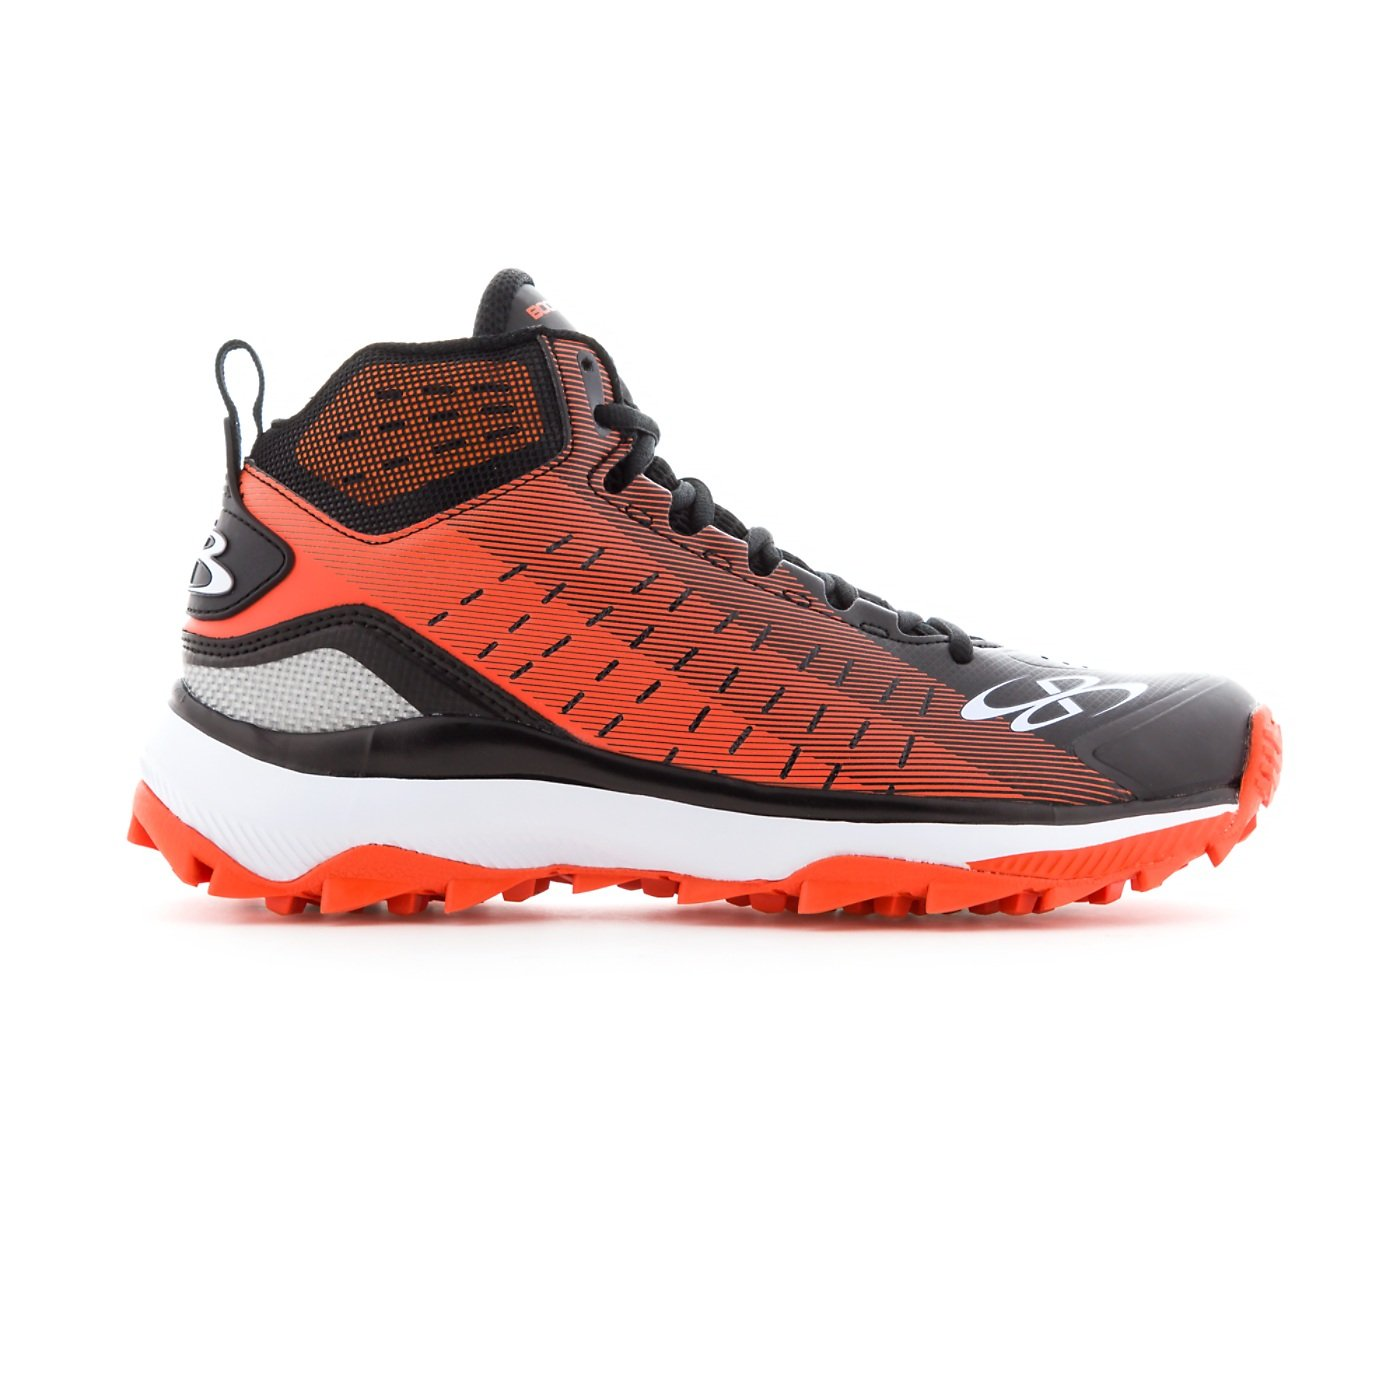 Boombah Men's Catalyst Mid Turf Shoes - 10 Color Options - Multiple Sizes B07B5H586S 9.5|Black/Orange